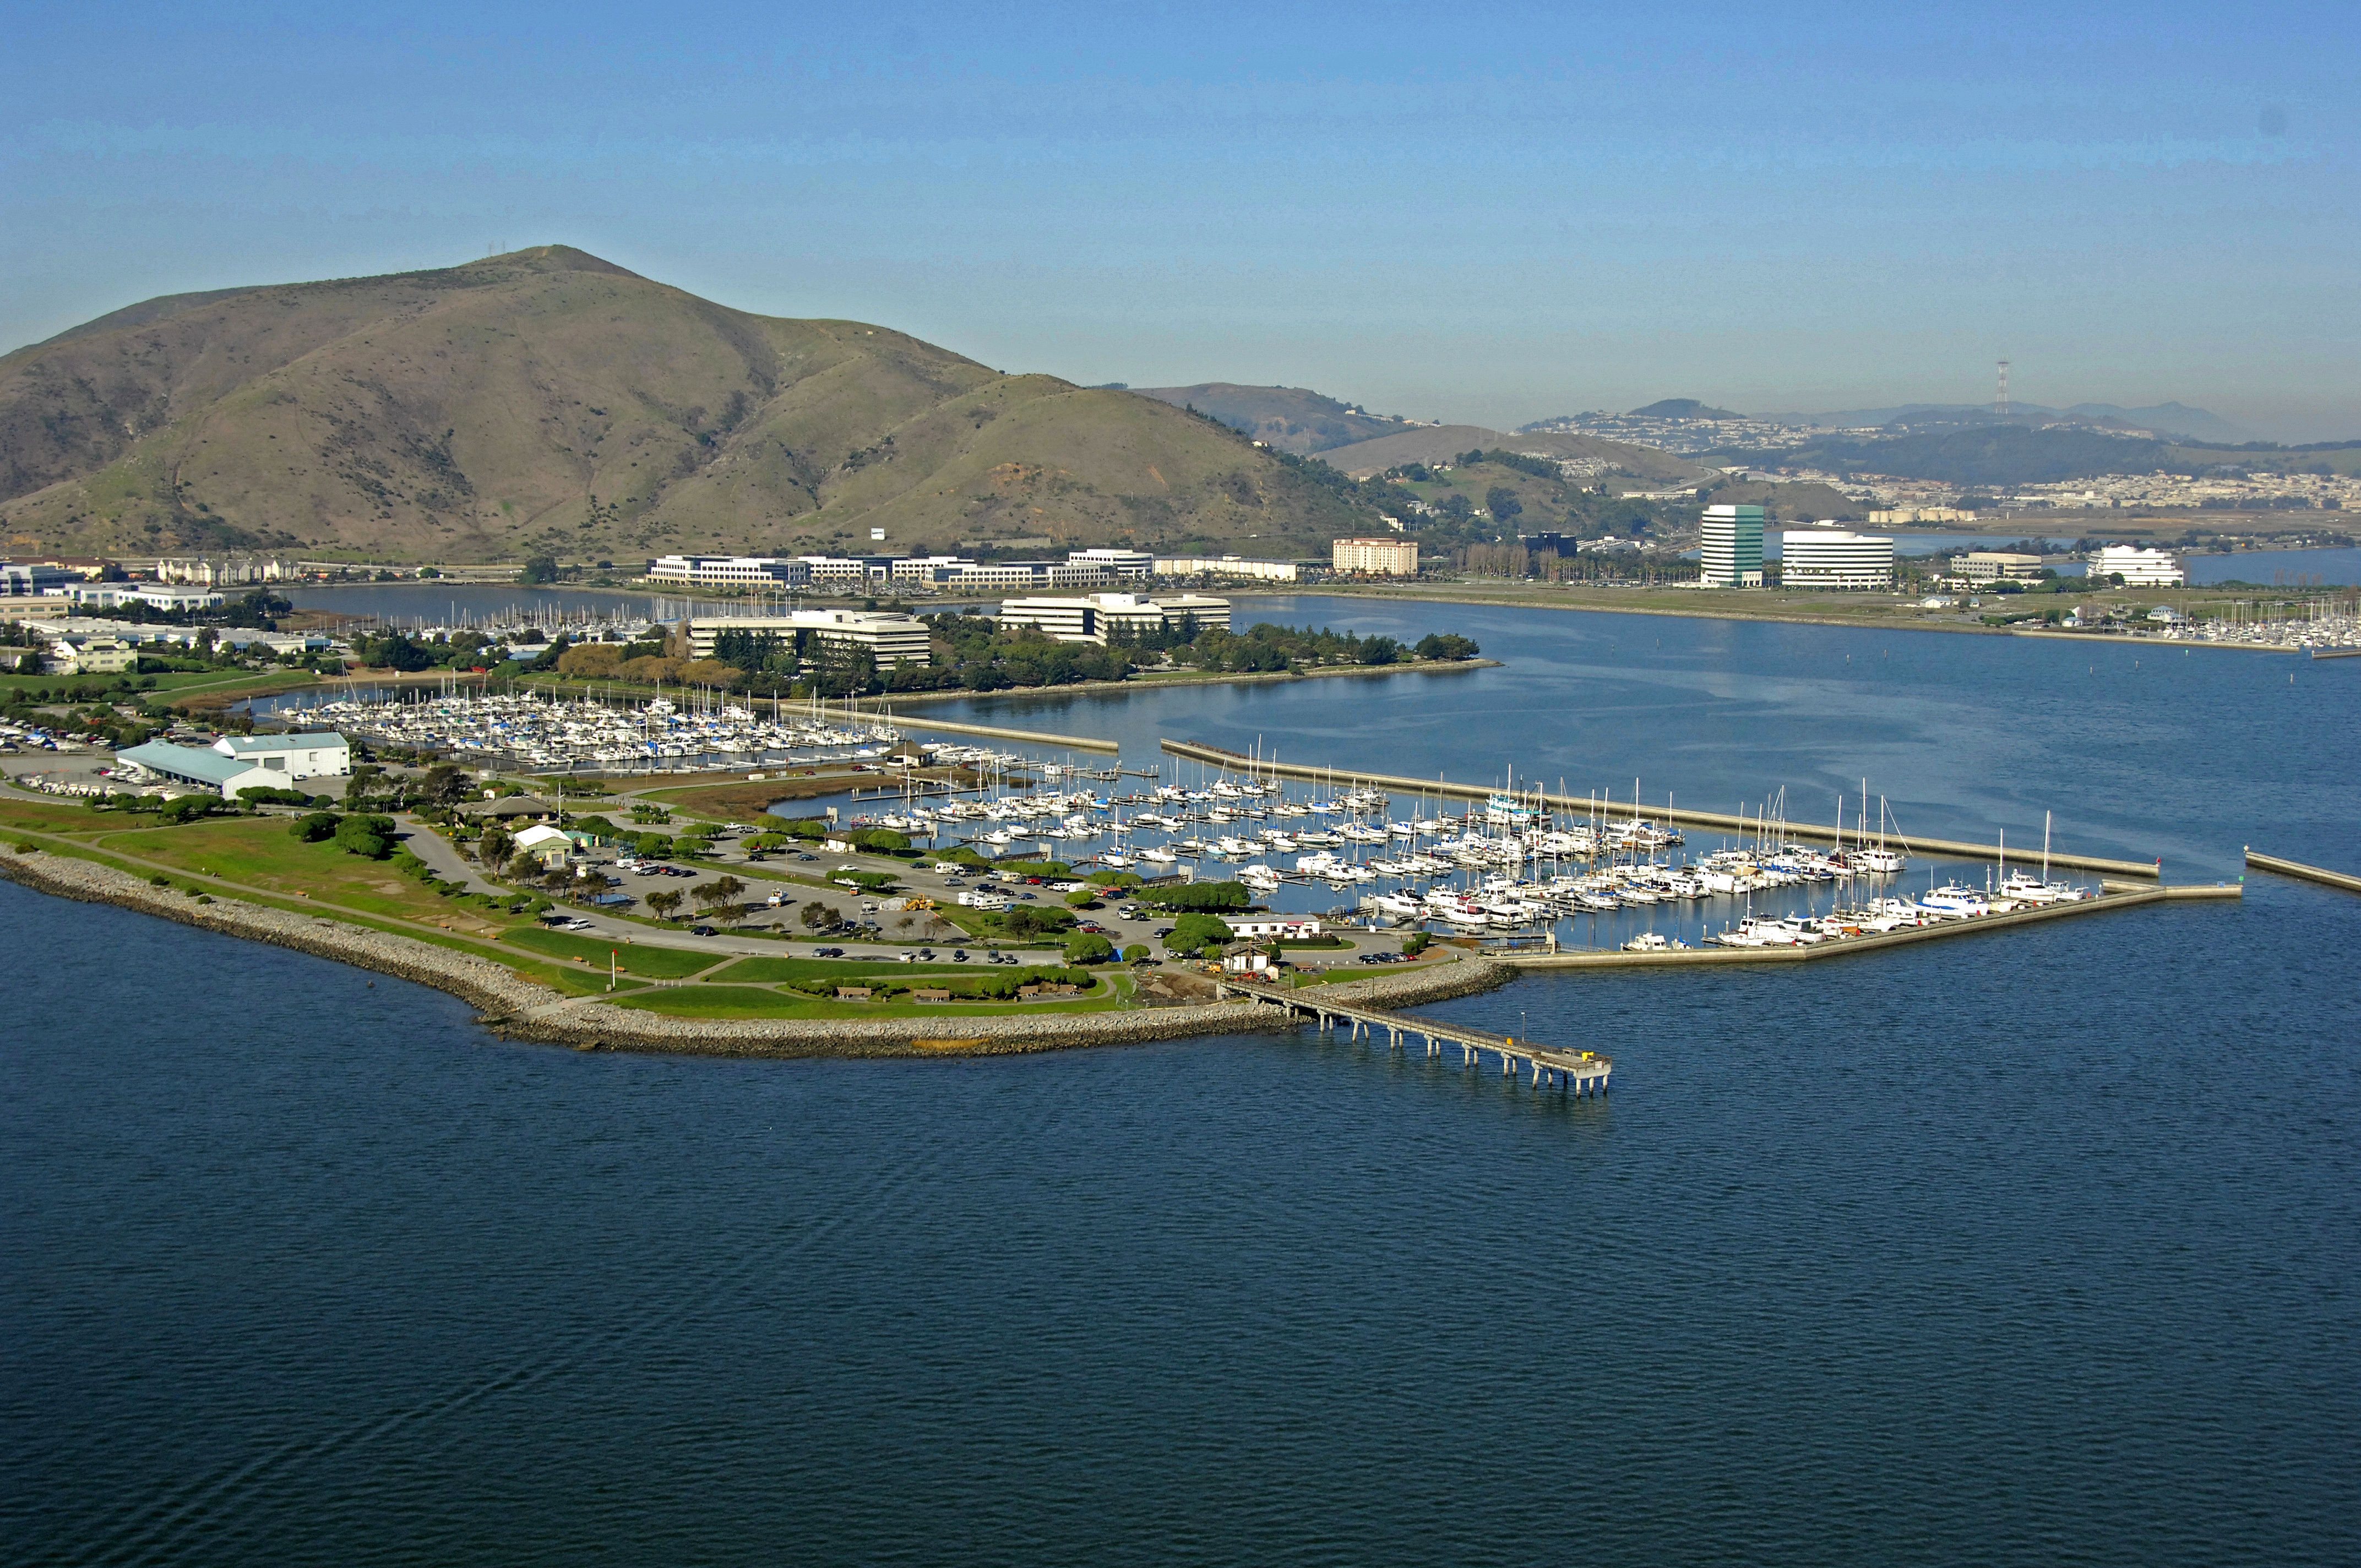 Oyster Point Marina in South San Francisco, CA, United States